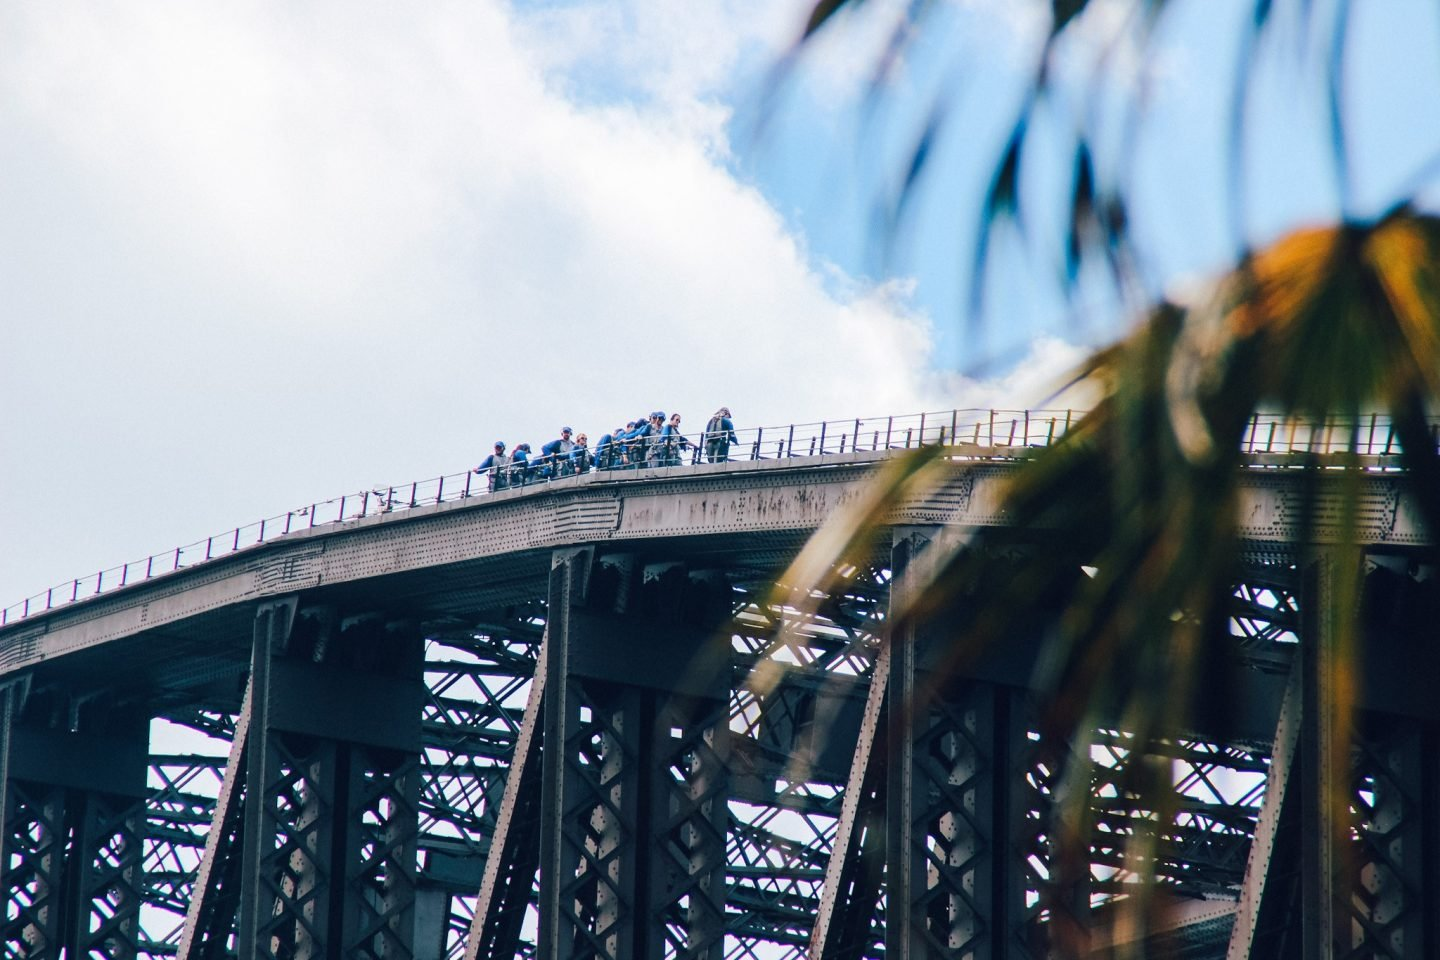 Things to do in the Rocks. Climbe the Harbour Bridge